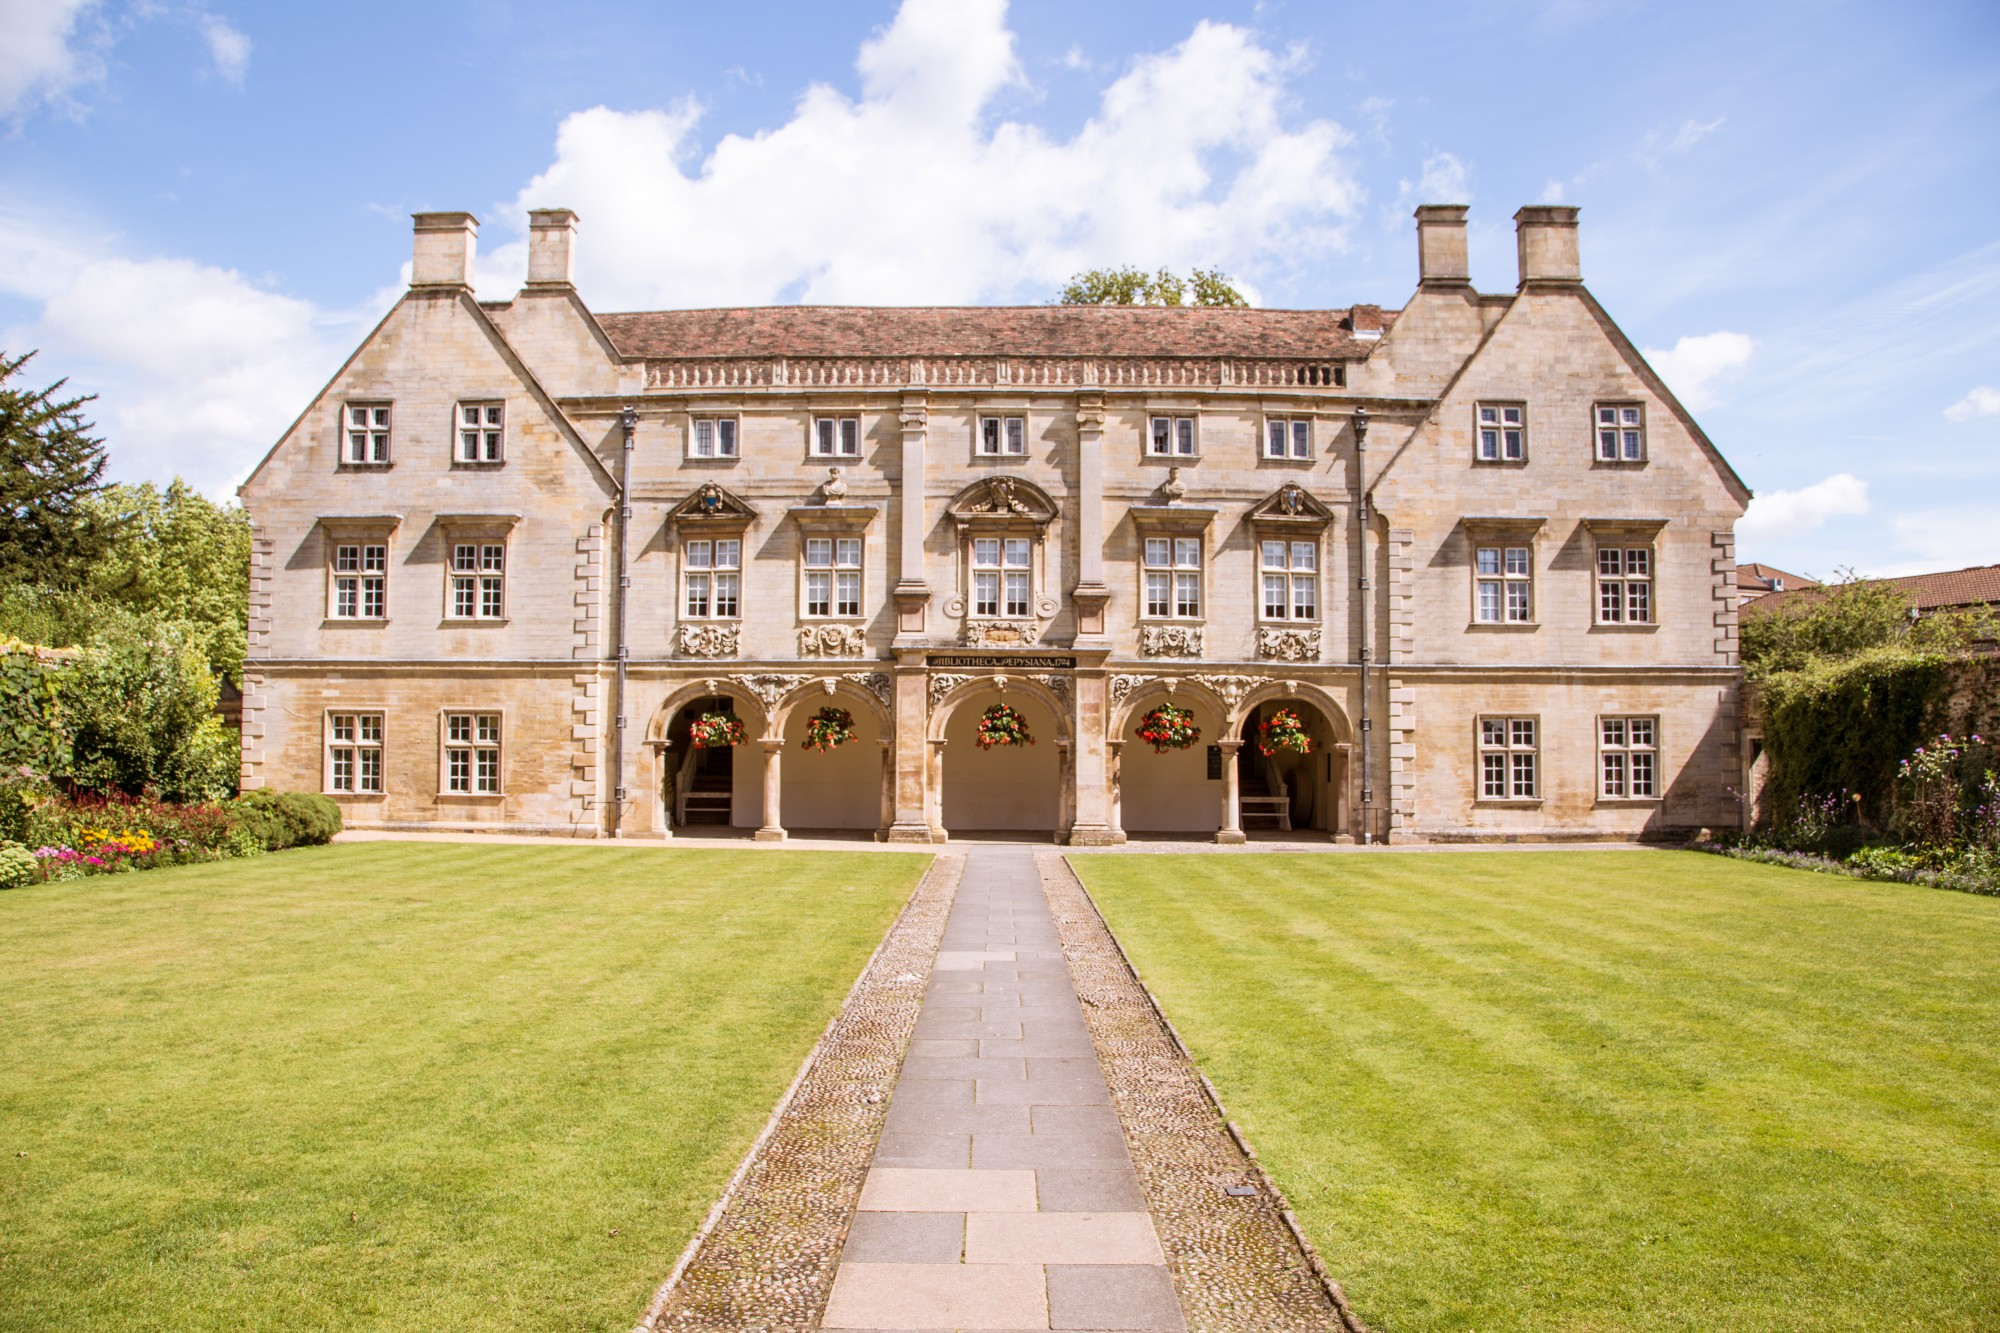 Magdalene College, Cambridge University